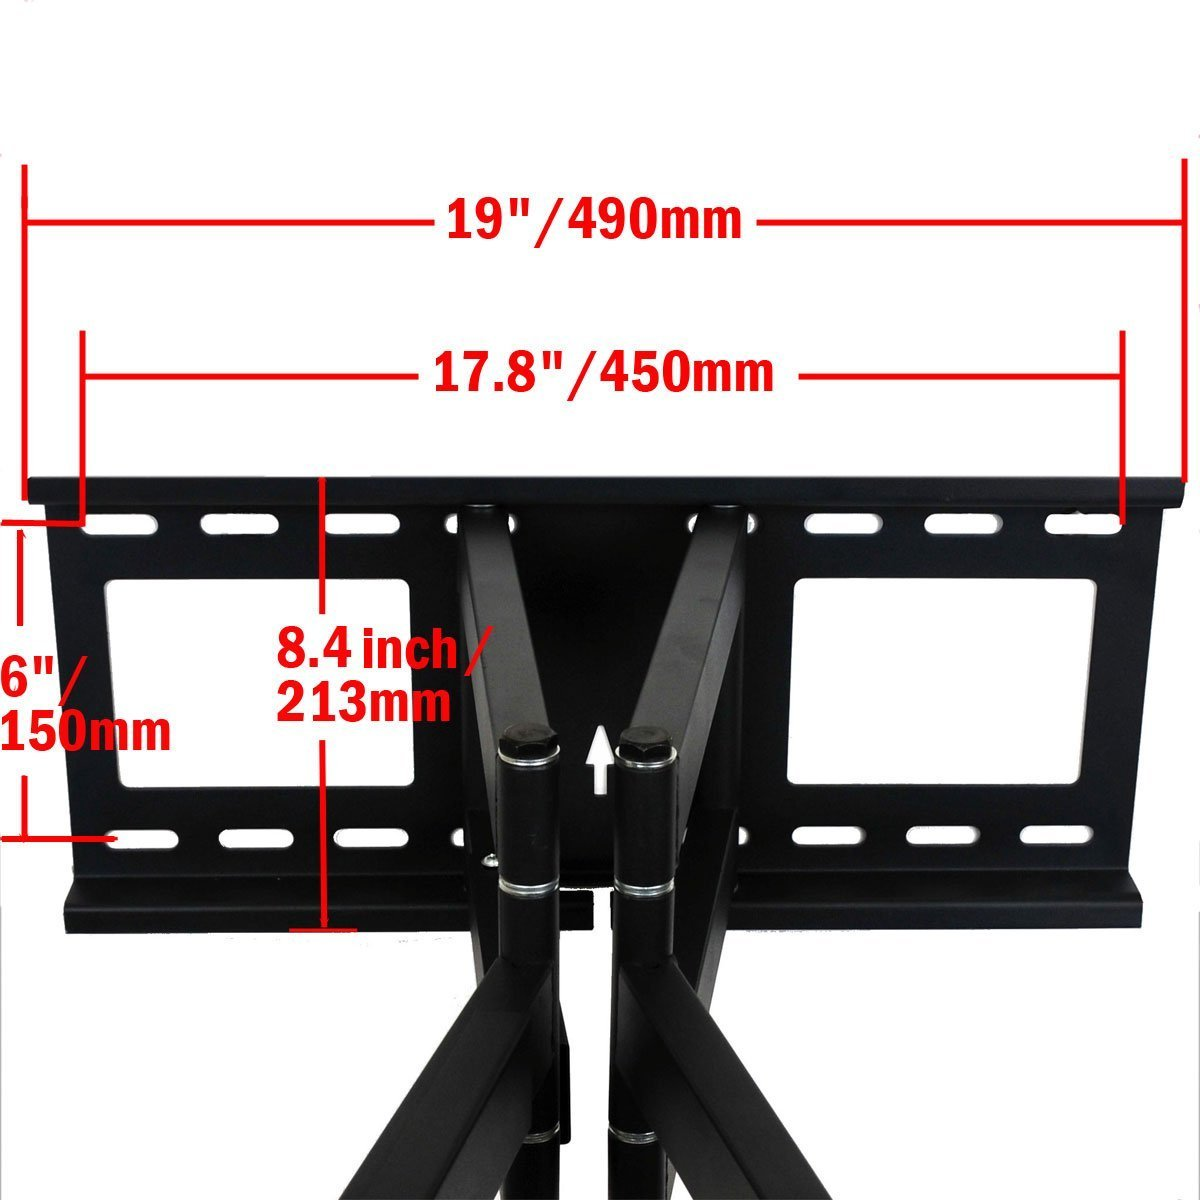 Videosecu TV Wall Mount per Haier 39 - 165,1 cm 39D3005 ... on